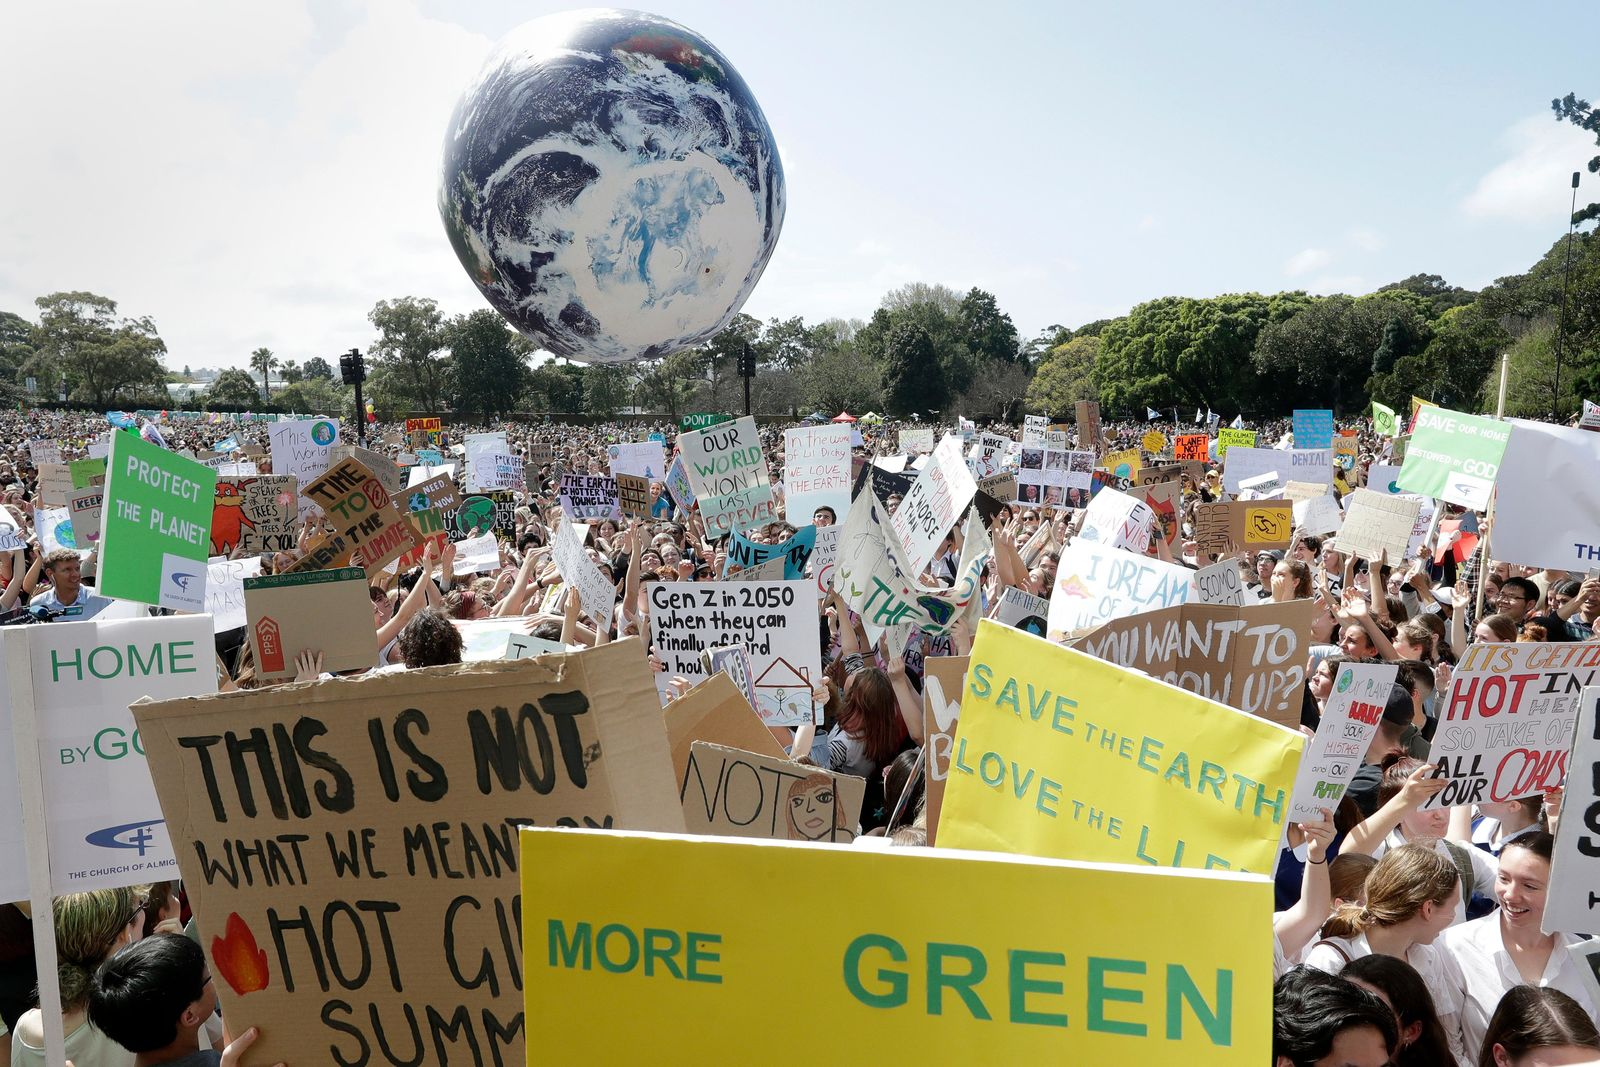 A large inflatable globe is bounced through the crowd as thousands of protestors, many of them school students, gather in Sydney, Friday, Sept. 20, 2019, calling for action to guard against climate change. s. (AP Photo/Rick Rycroft)